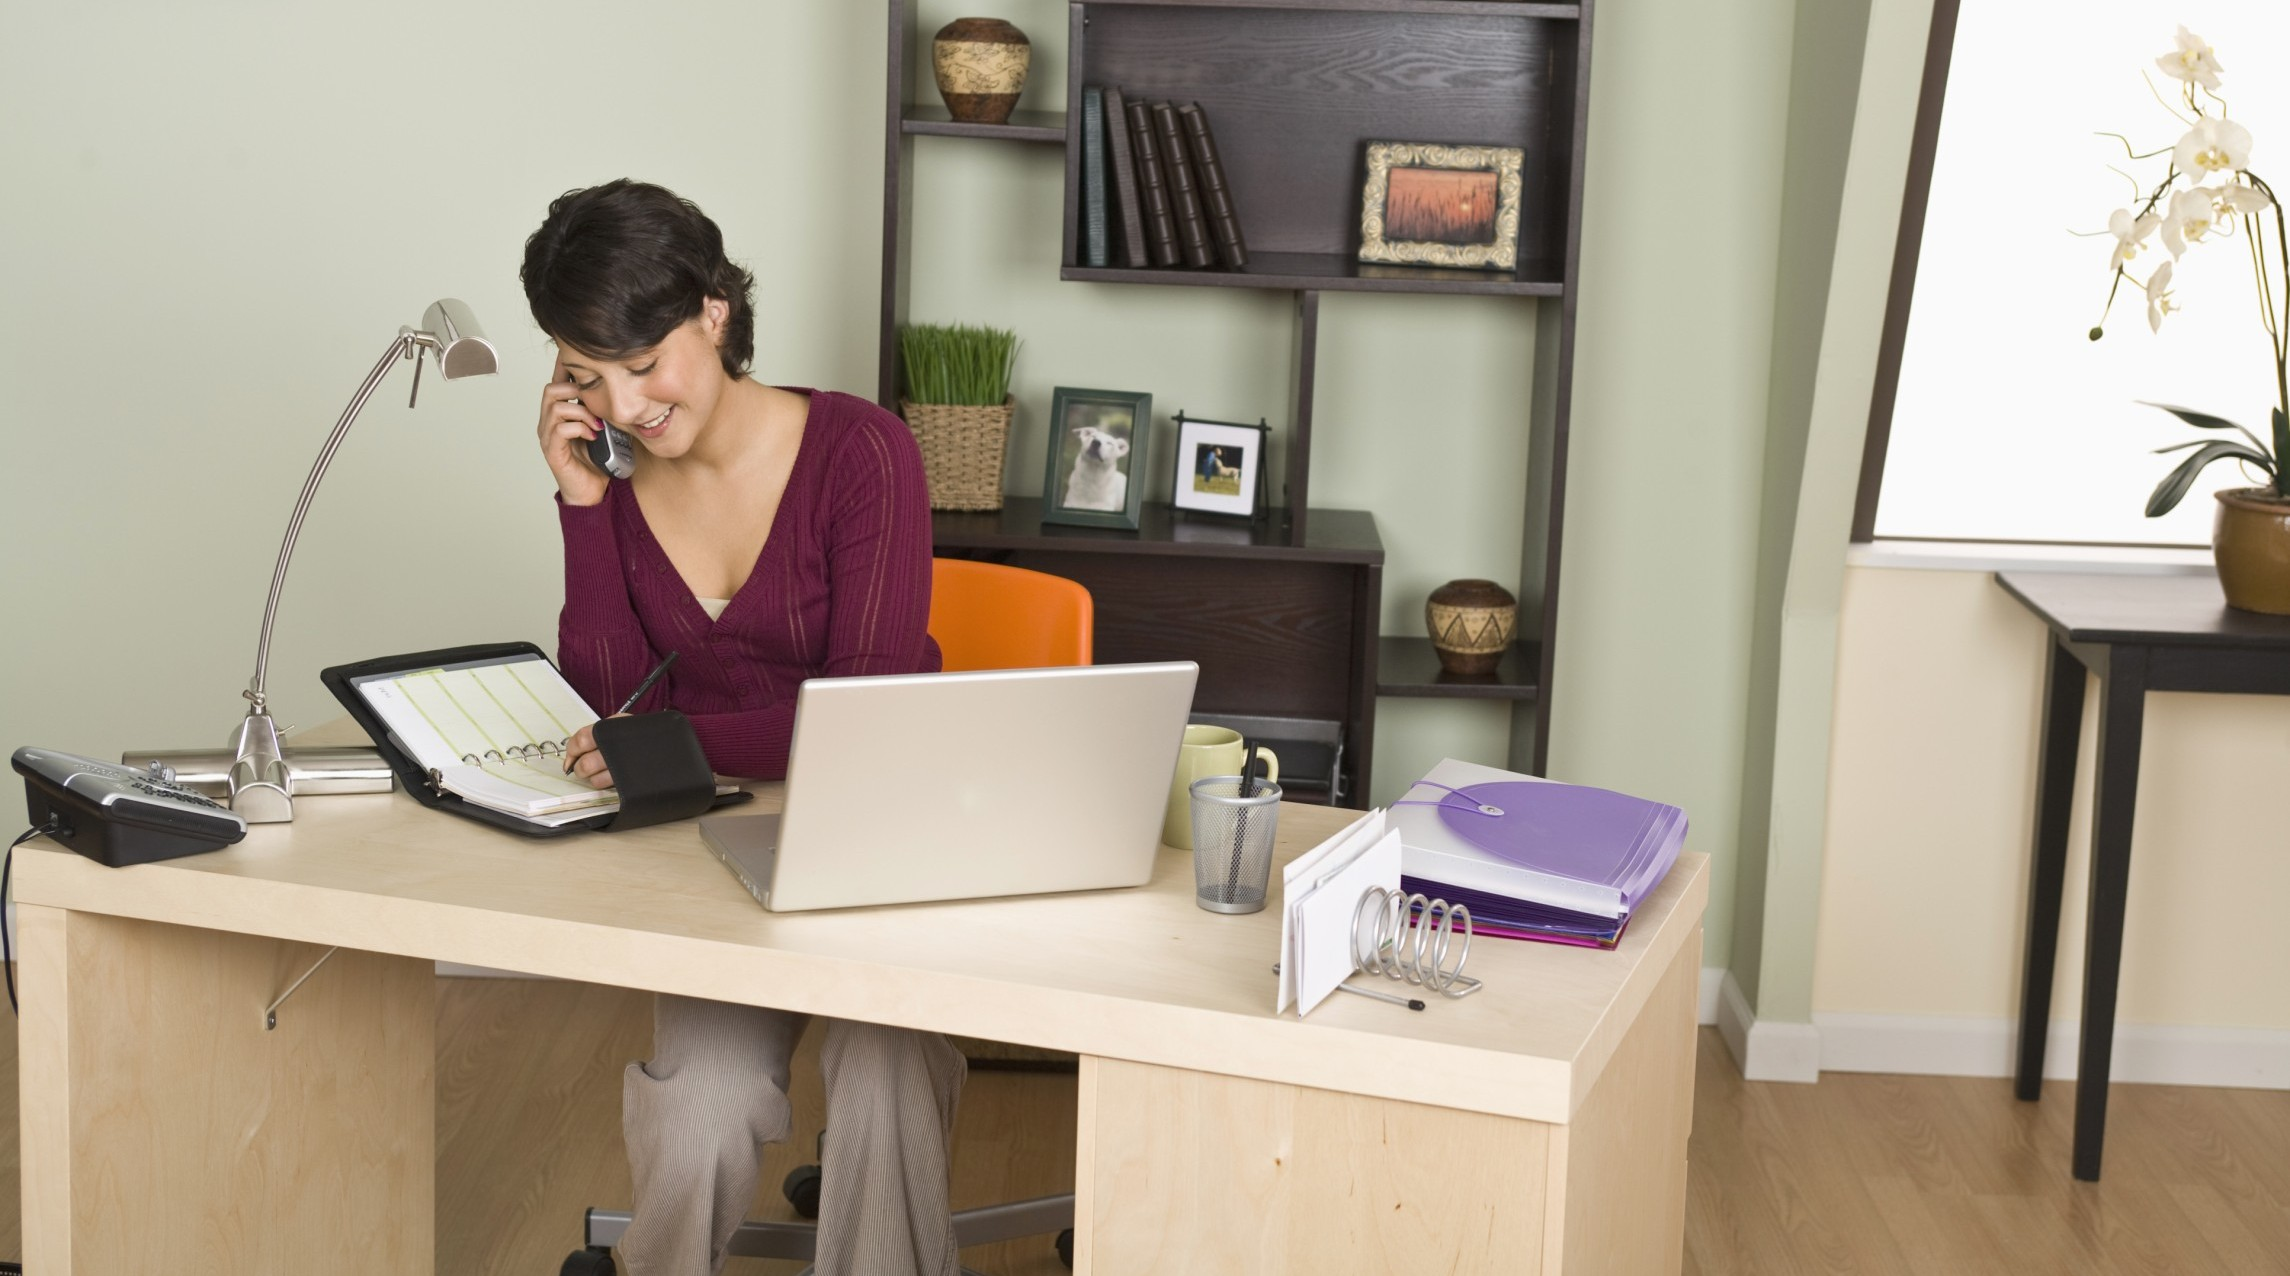 5 Easy Home Office Fixes For Better Productivity